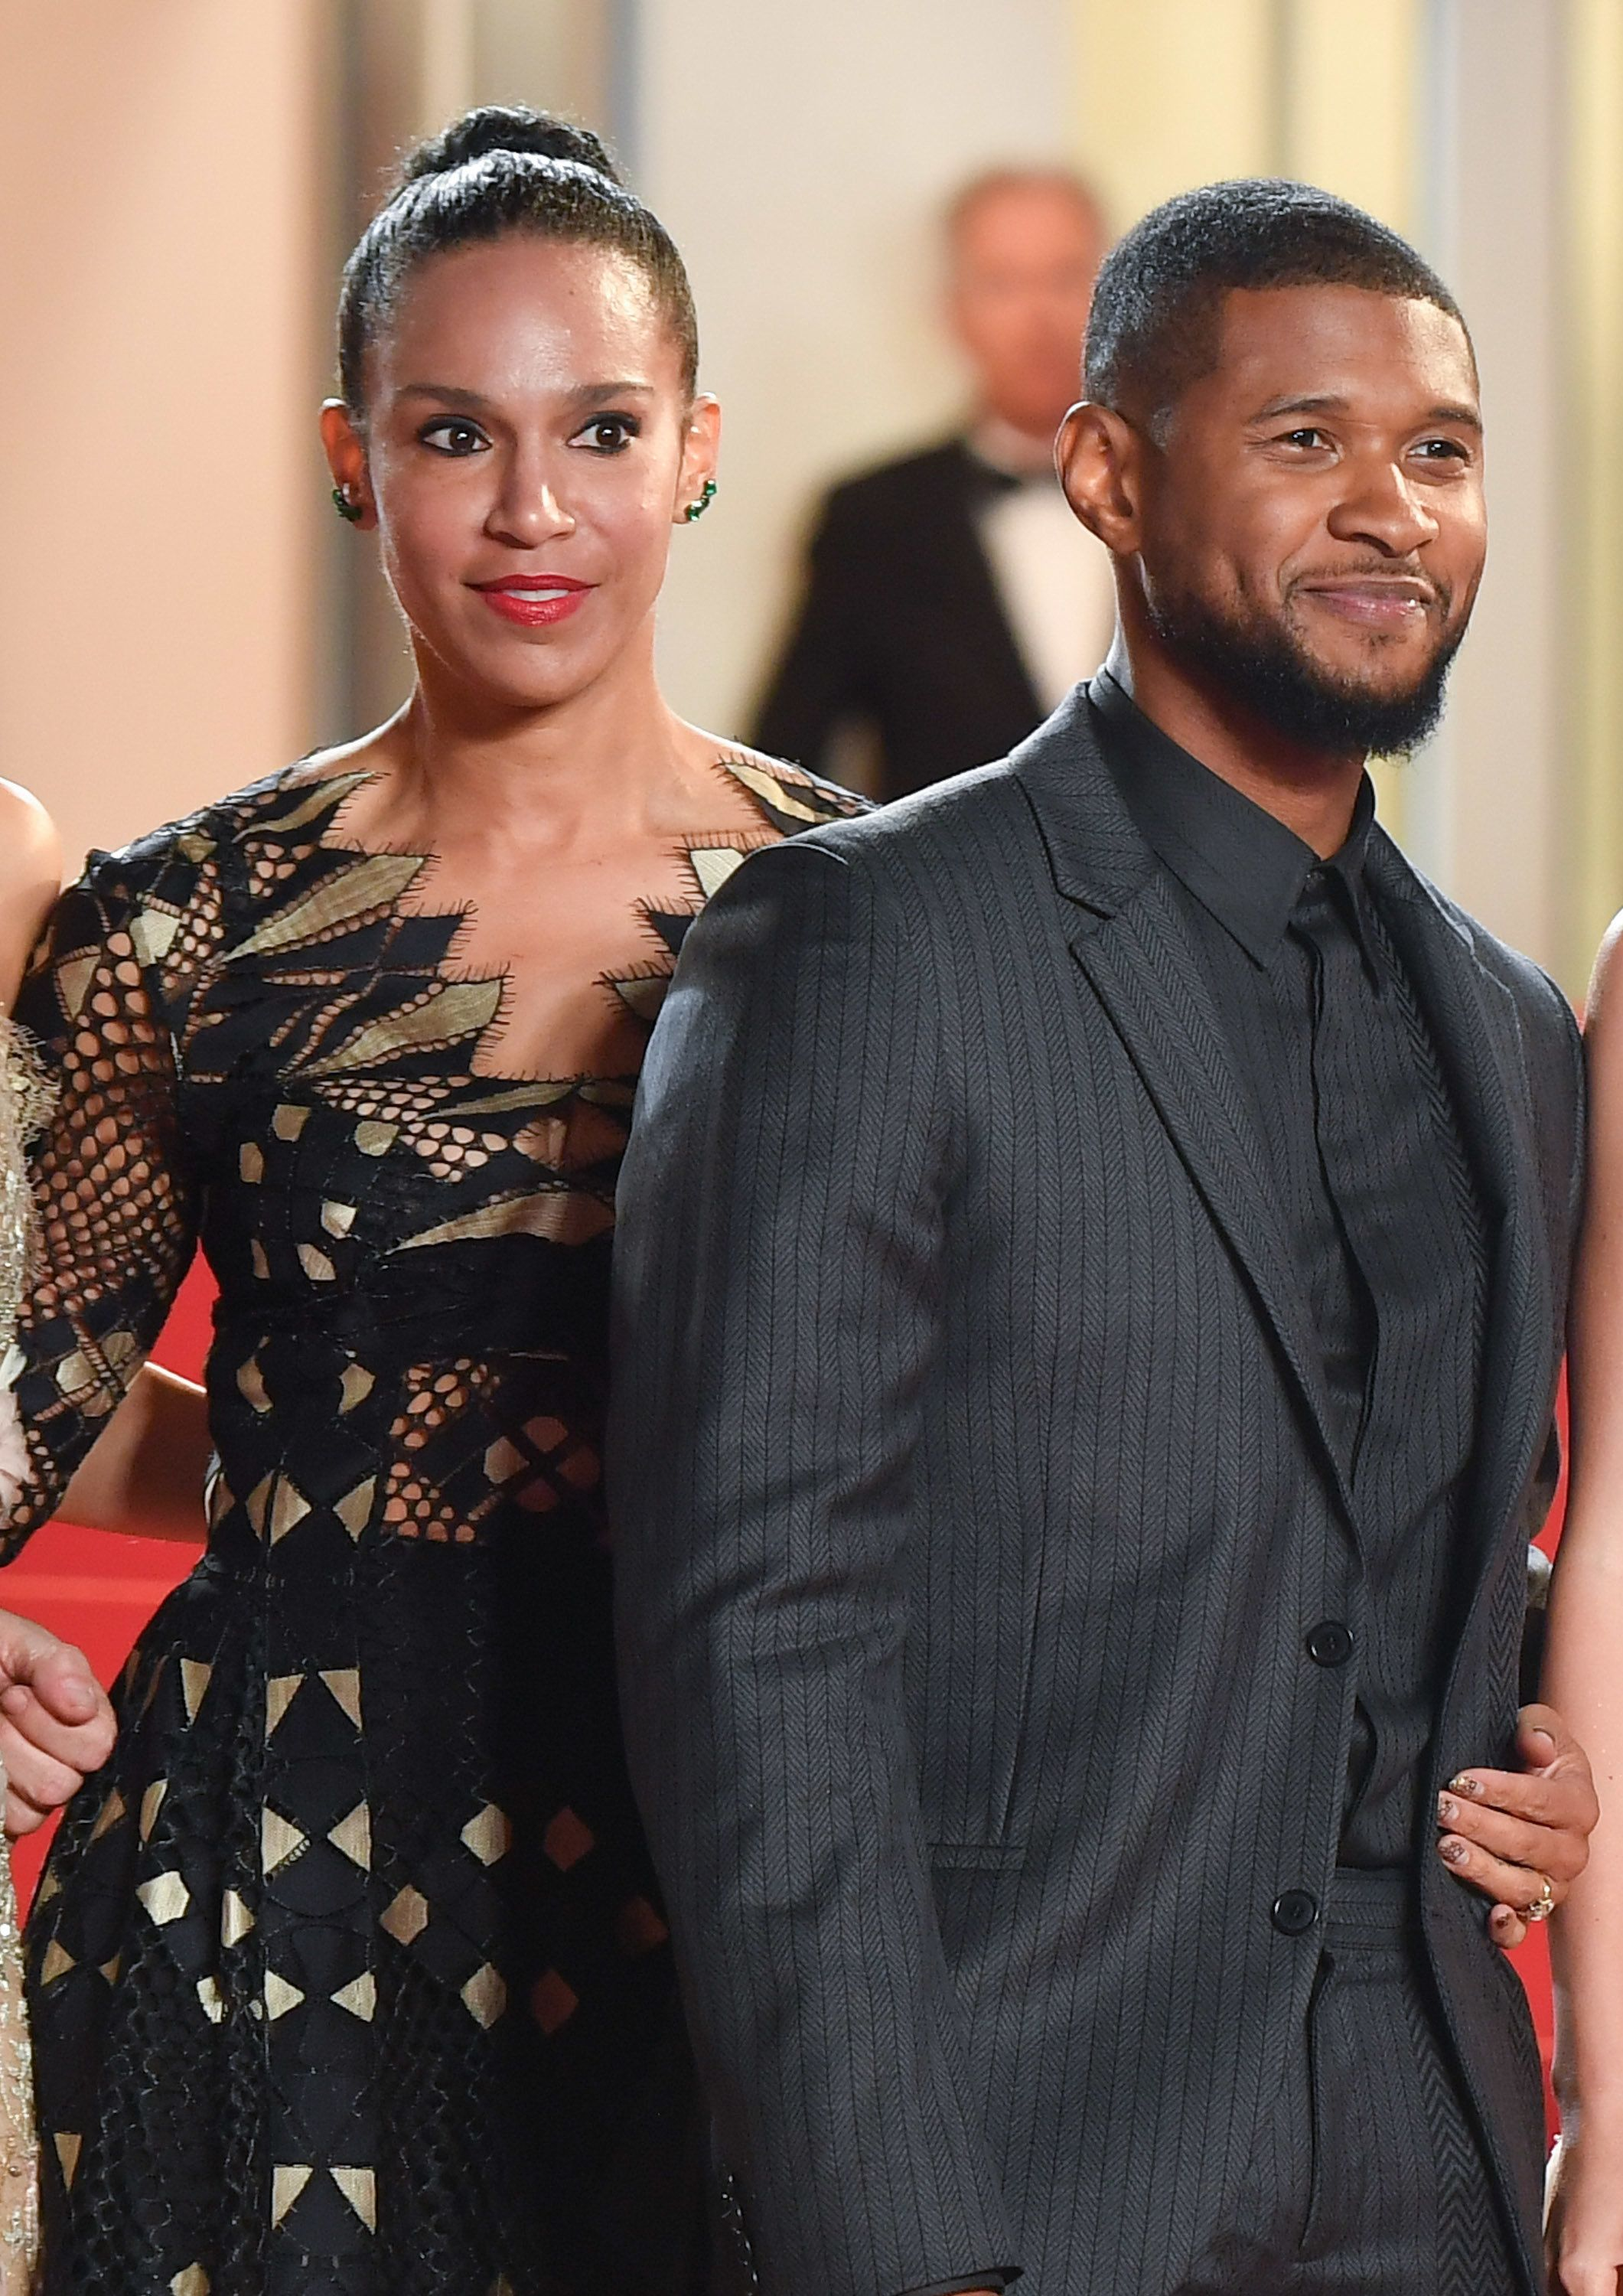 CANNES, FRANCE - MAY 16: Usher and fiance Grace Miguel attend the screening of 'Hands Of Stone' at the annual 69th Cannes Film Festival at Palais des Festivals on May 16, 2016 in Cannes, France.  (Photo by George Pimentel/WireImage)